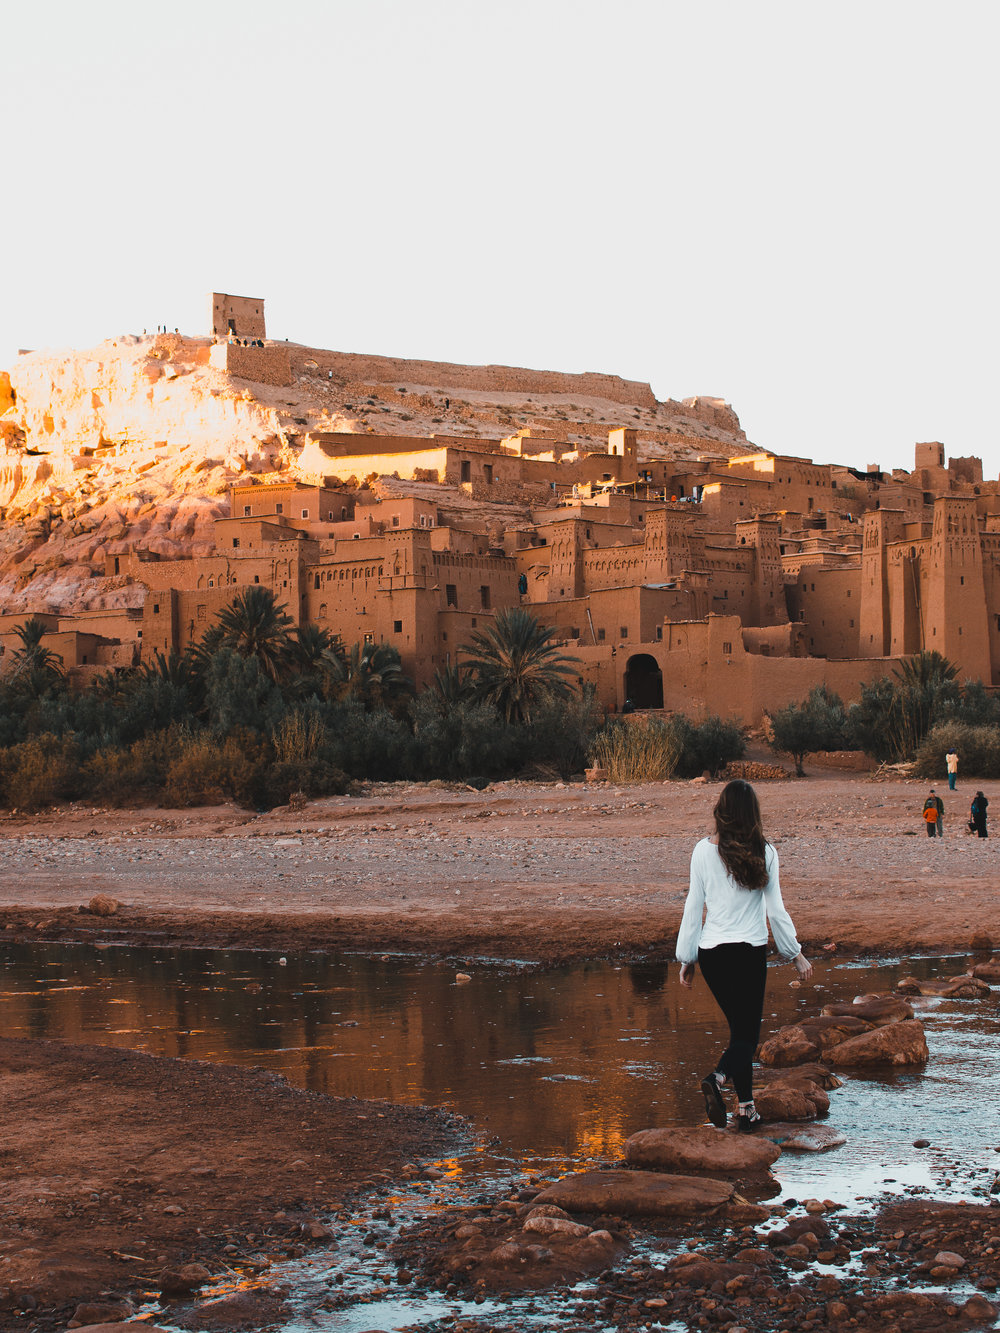 With two weeks in Morocco, you can stop and enjoy places like Ait Benhaddou